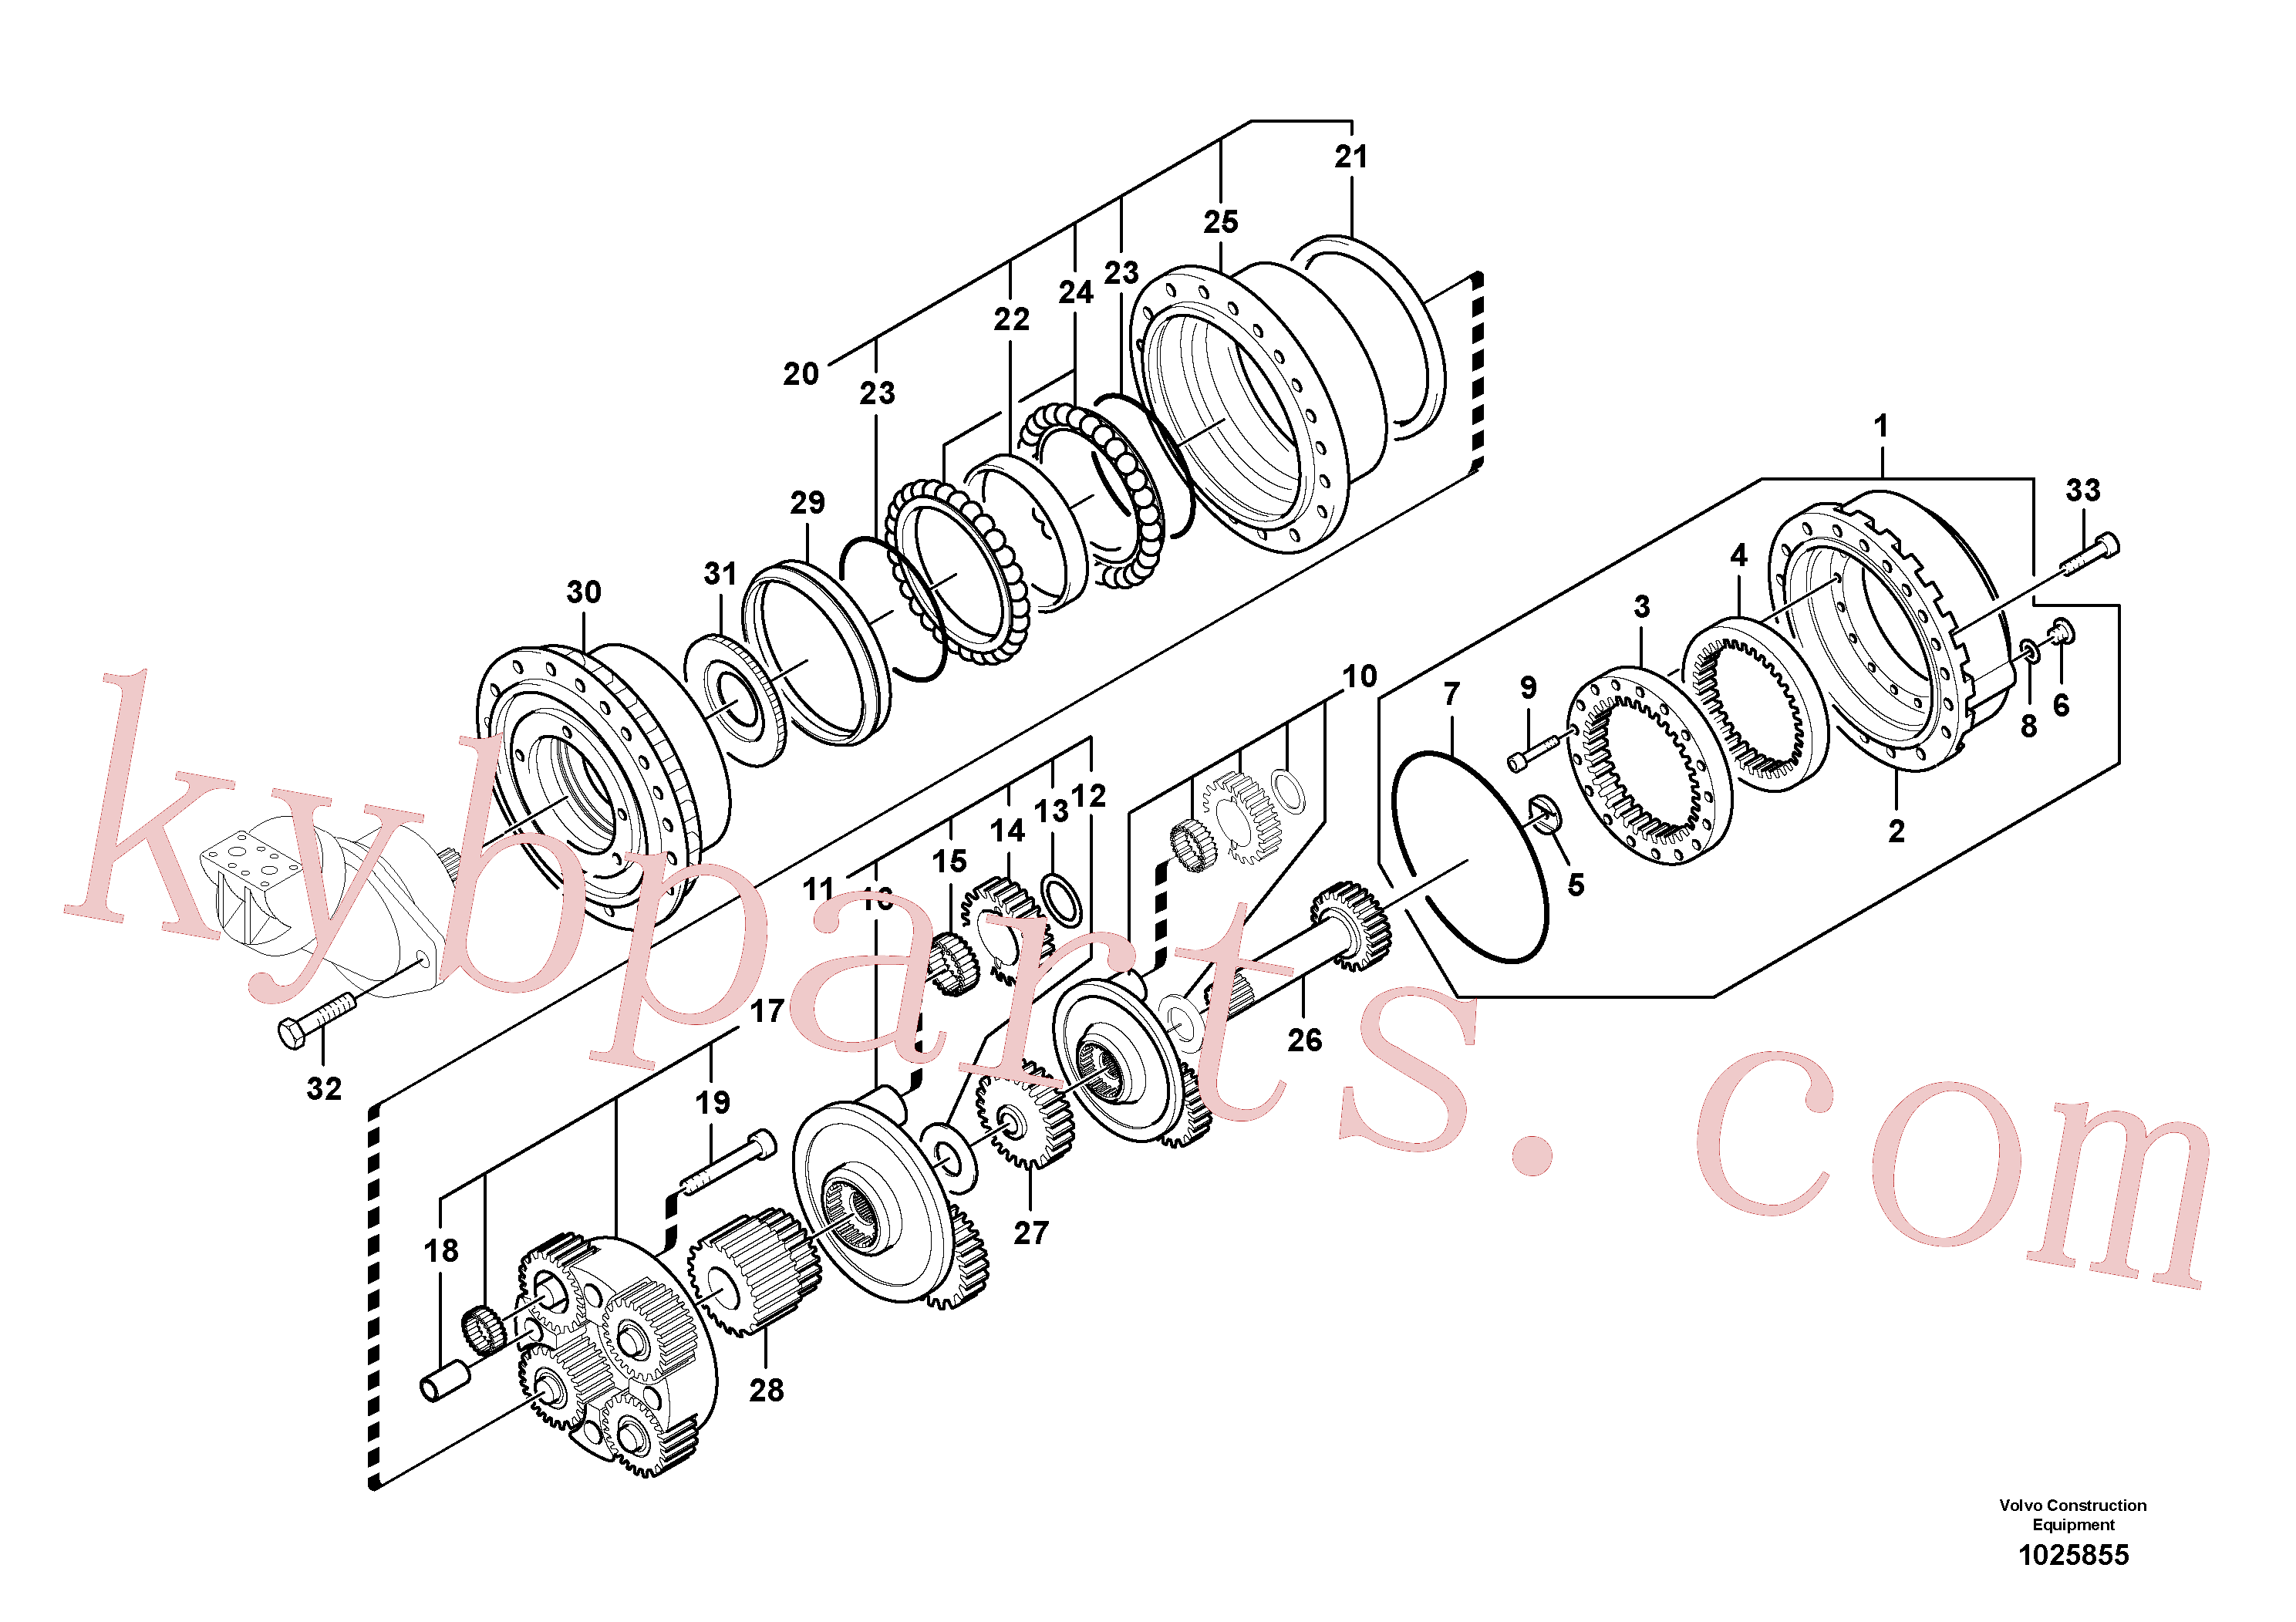 SA8230-35430 for Volvo Travel gearbox(1025855 assembly)